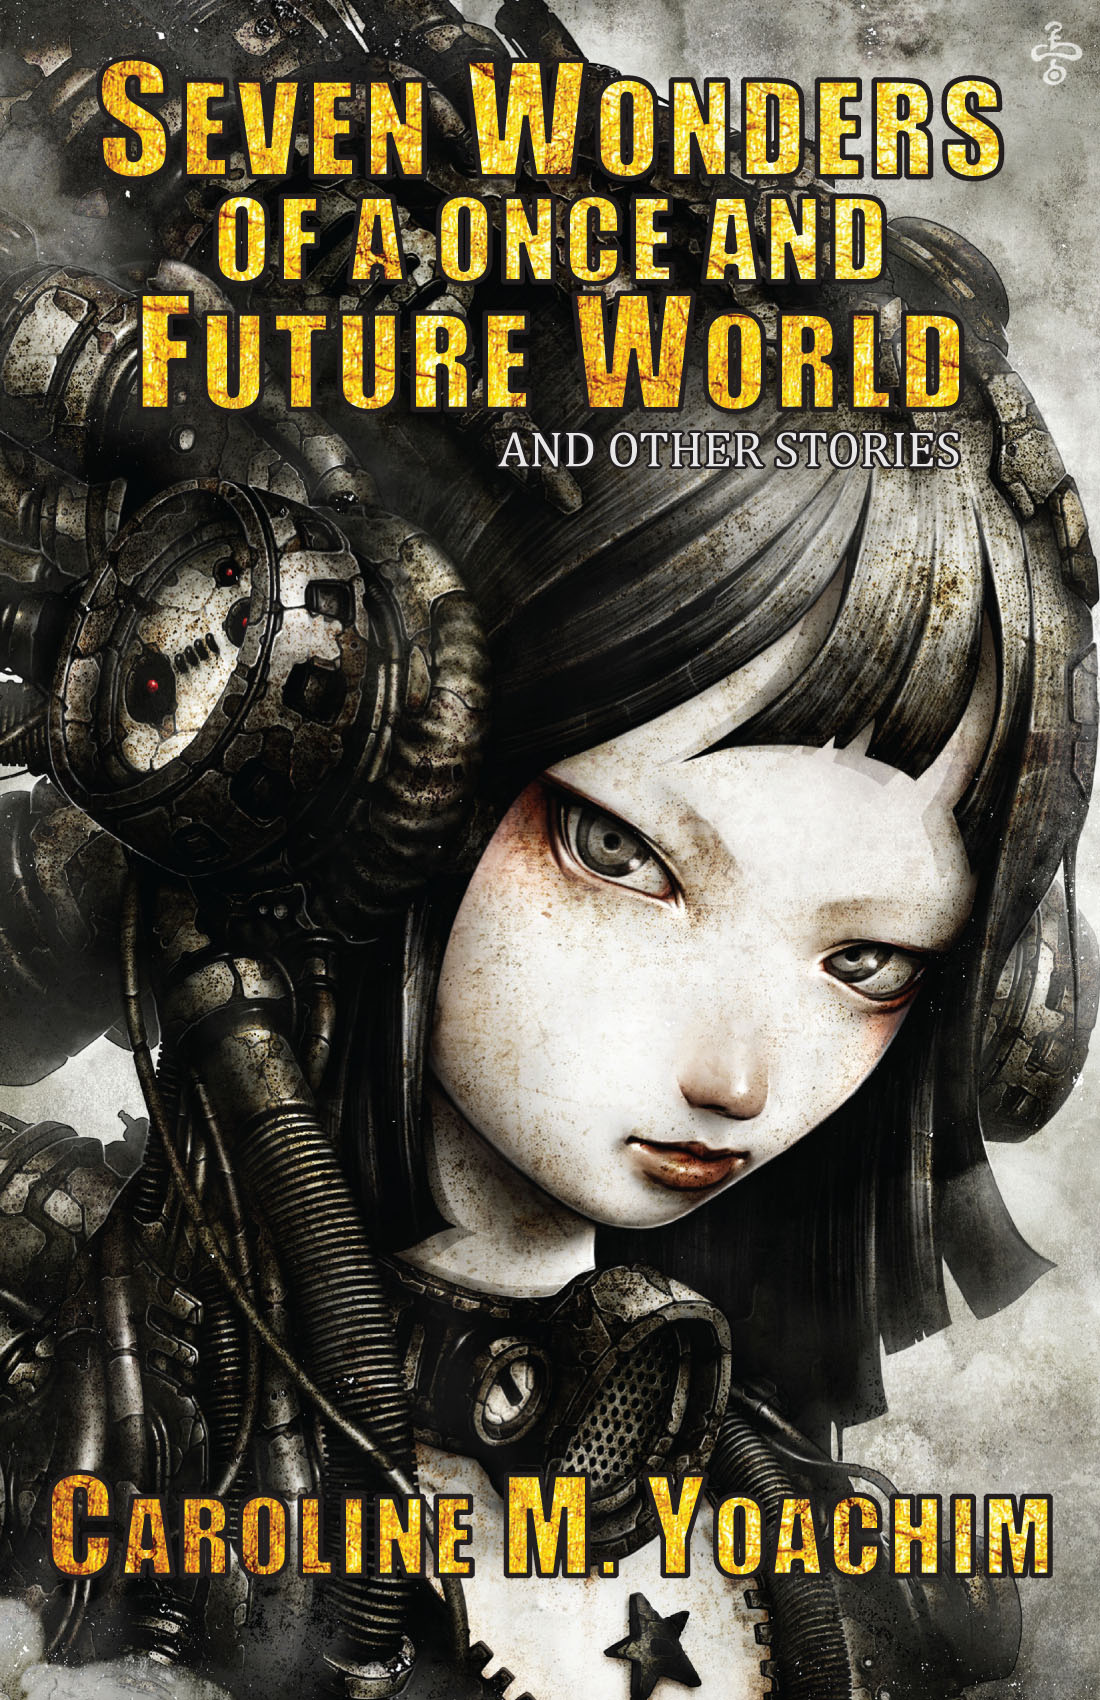 Seven Wonders of a Once and Future World by Caroline M. Yoachim